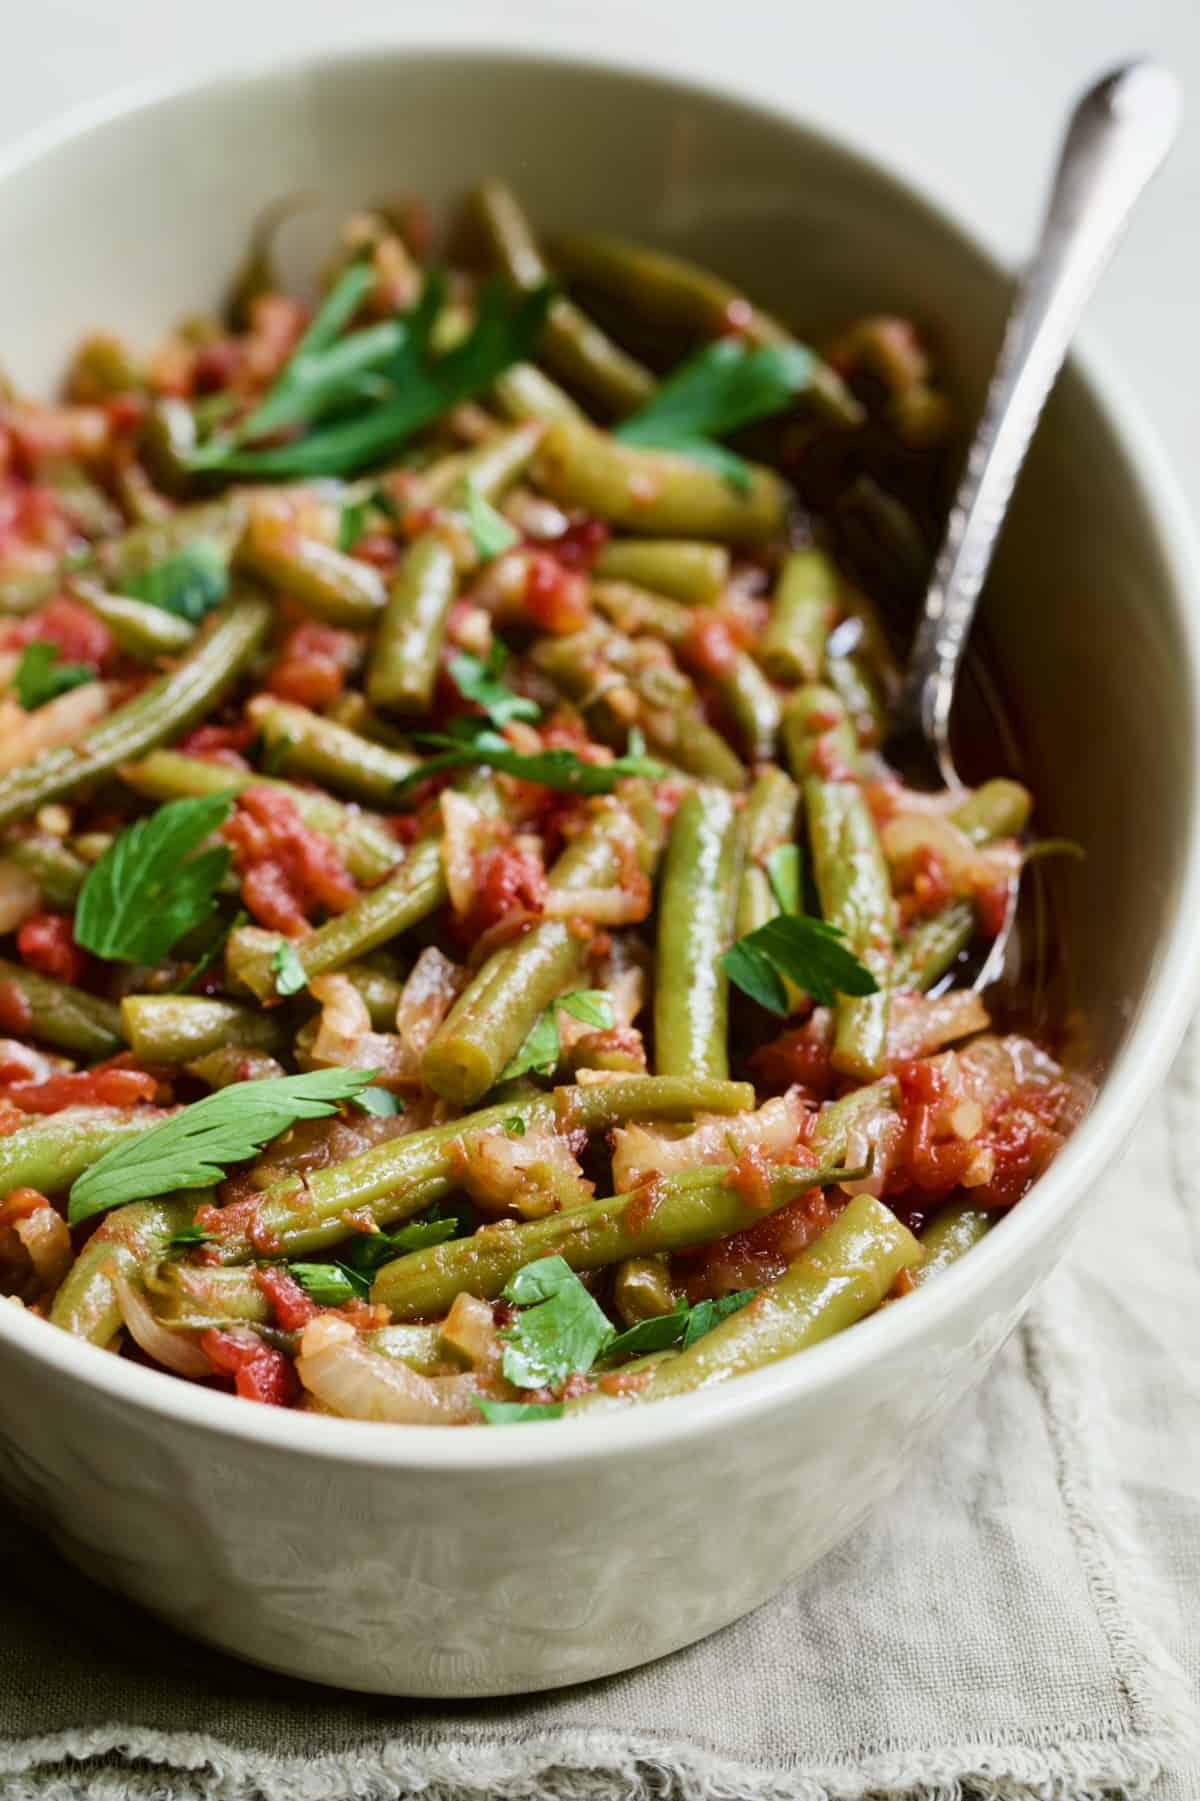 Mediterranean Braised Green Beans with Tomatoes in serving dish with serving spoon on beige fringed napkin.